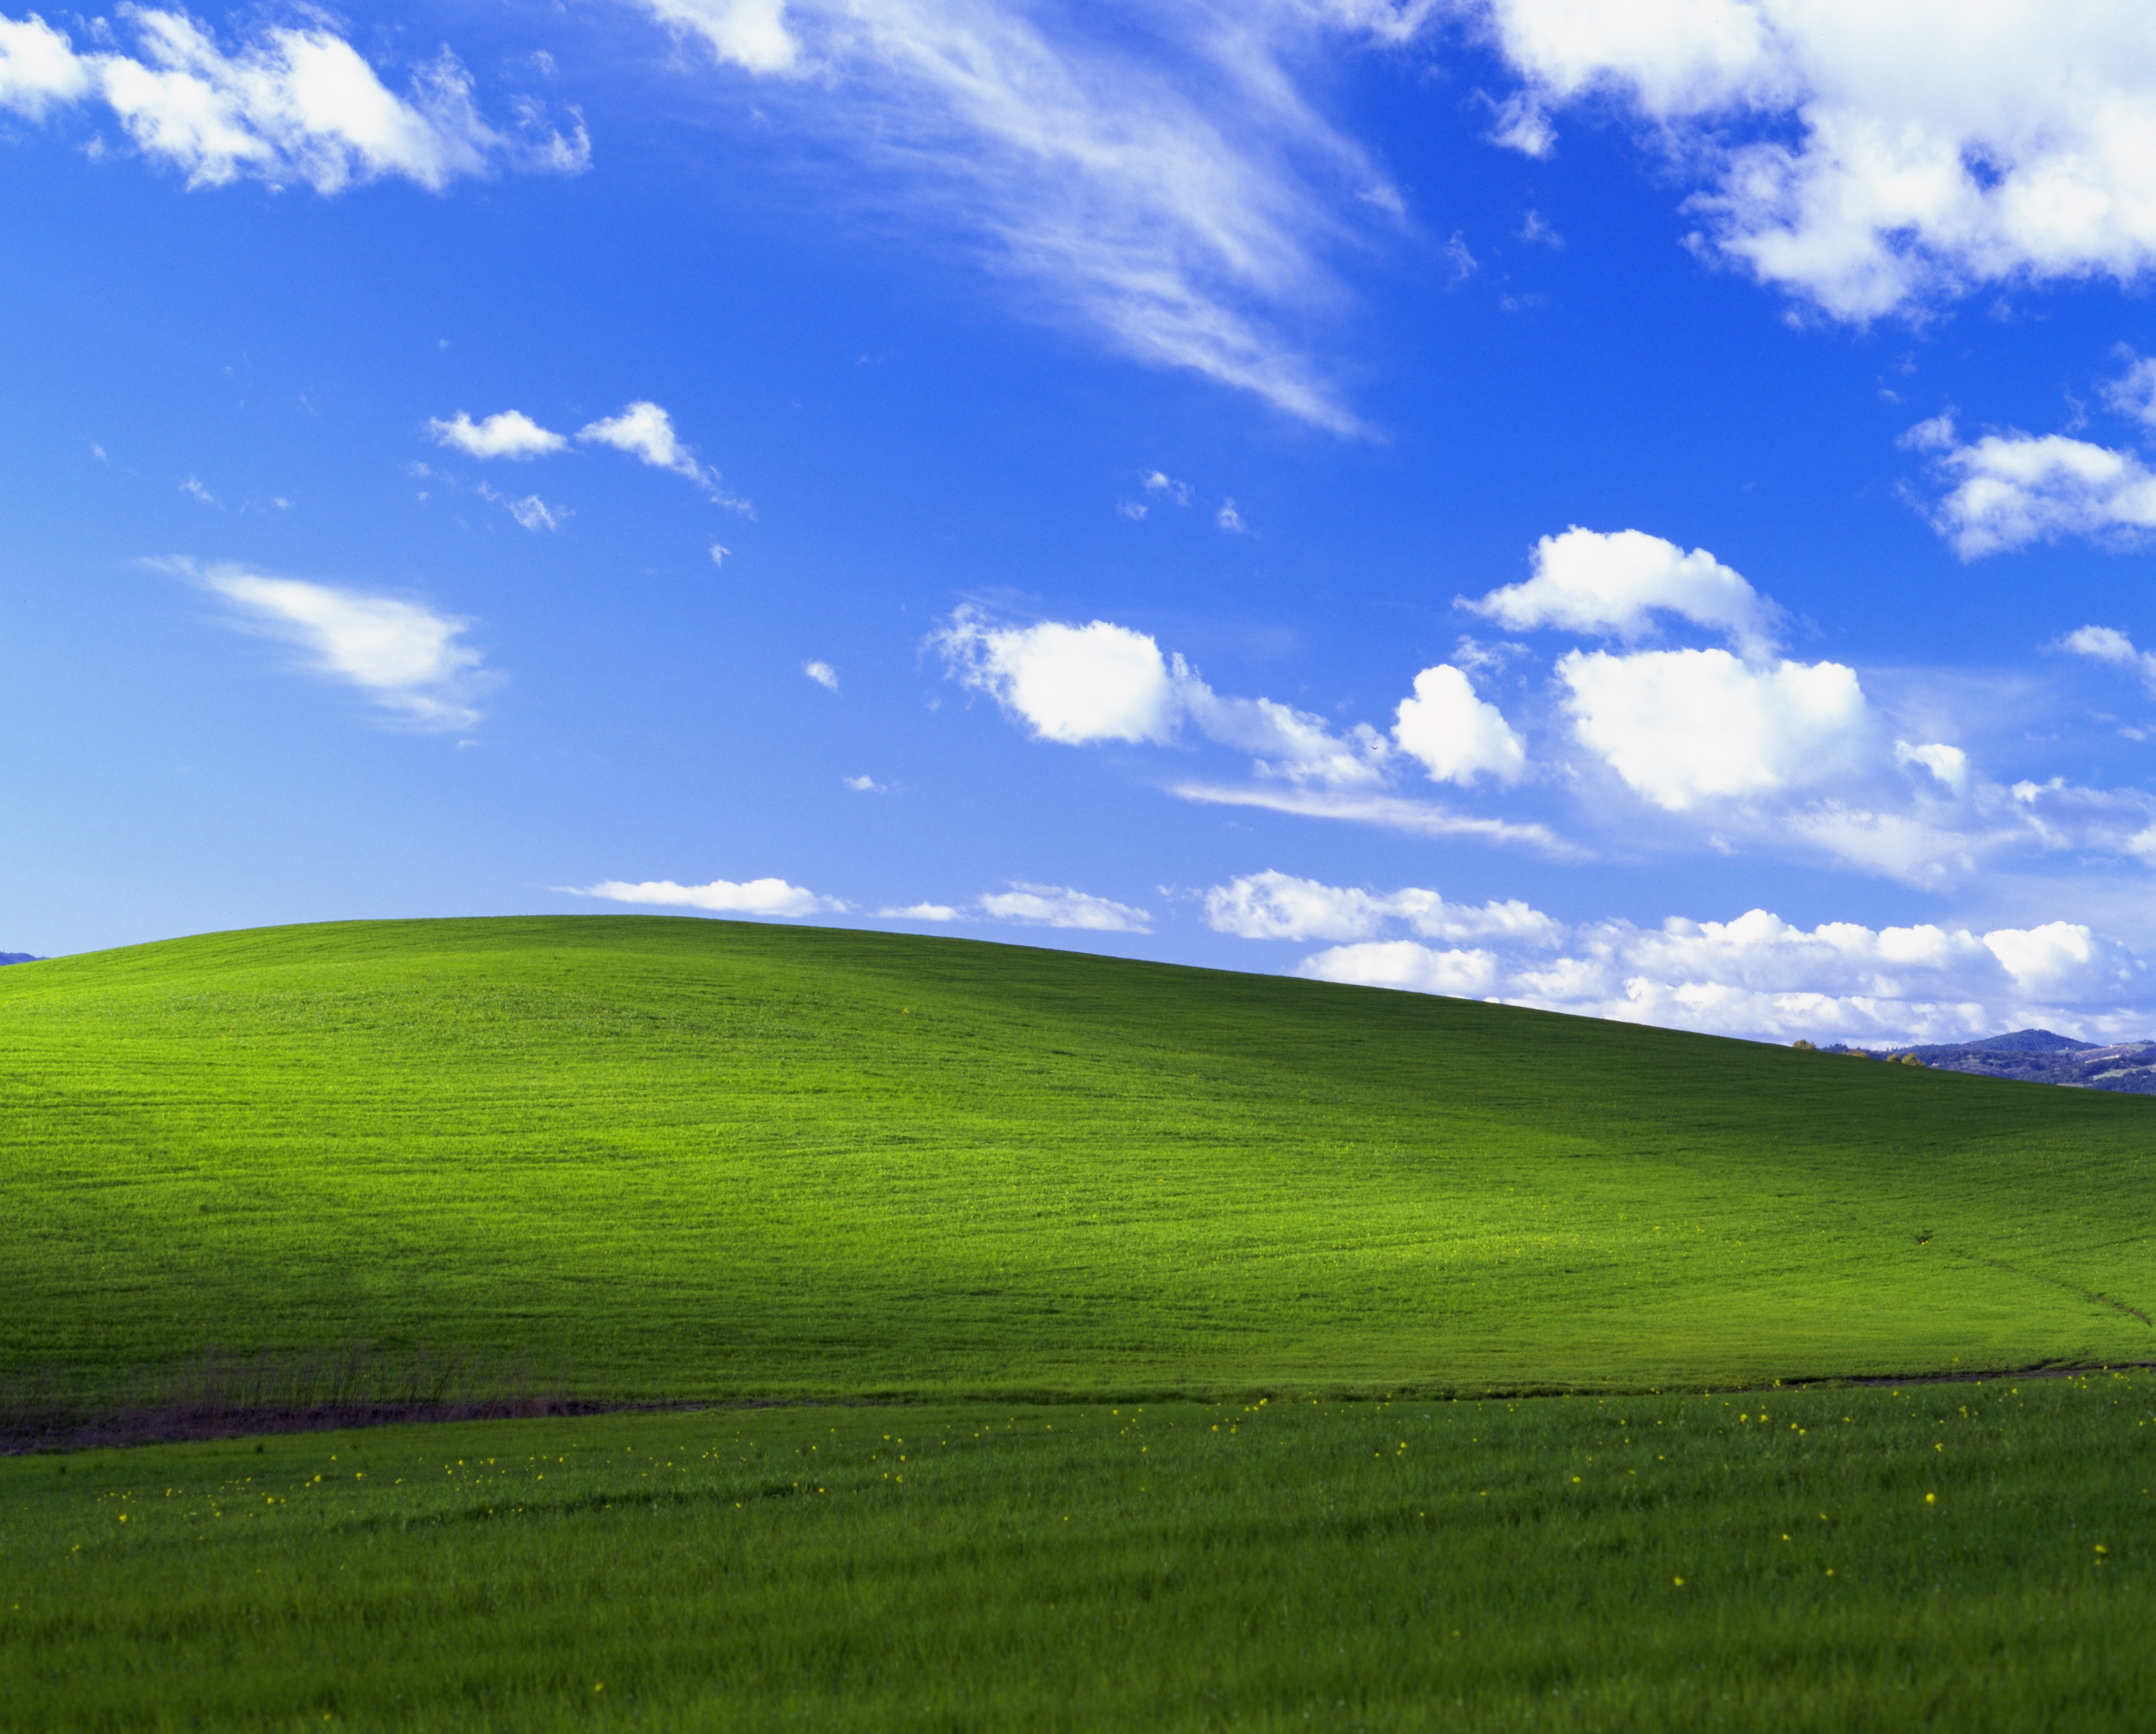 High Resolution Windows Xp Wallpaper 4510x3627 And Png Windows Wallpaper Windows Xp Backgrounds Desktop